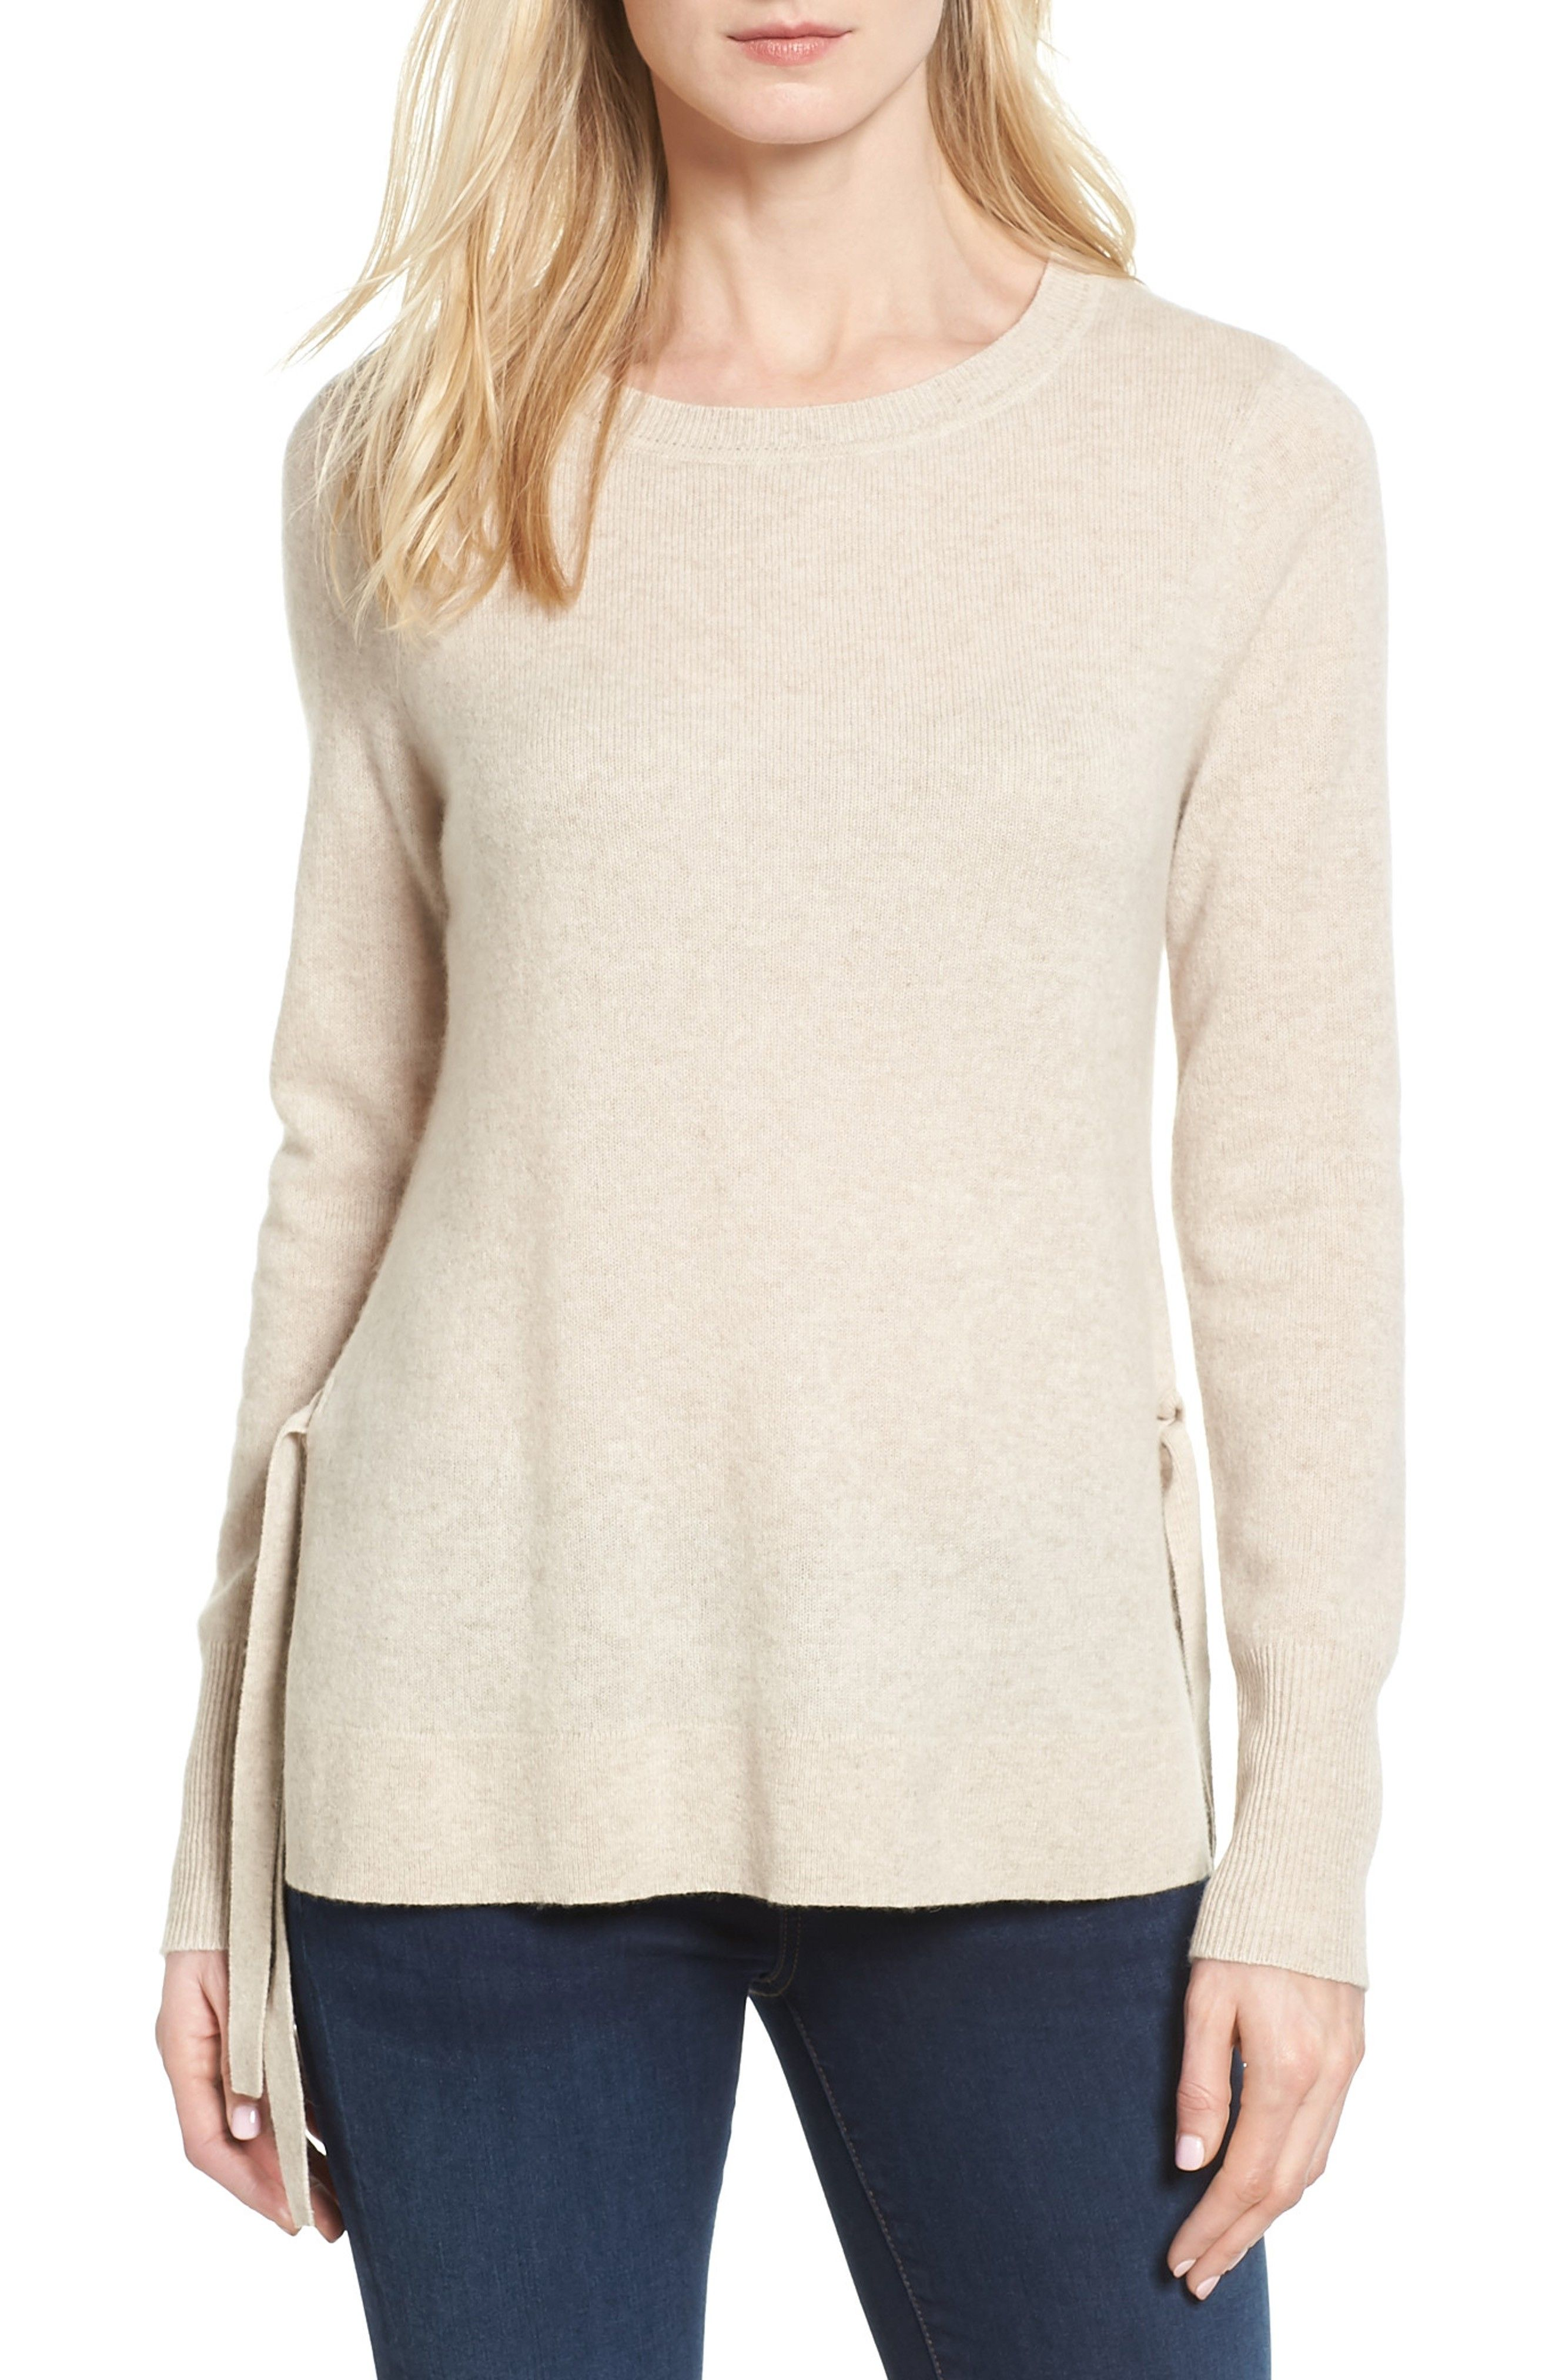 Super soft side tie cashmere sweater by Halogen from Nordstrom ...